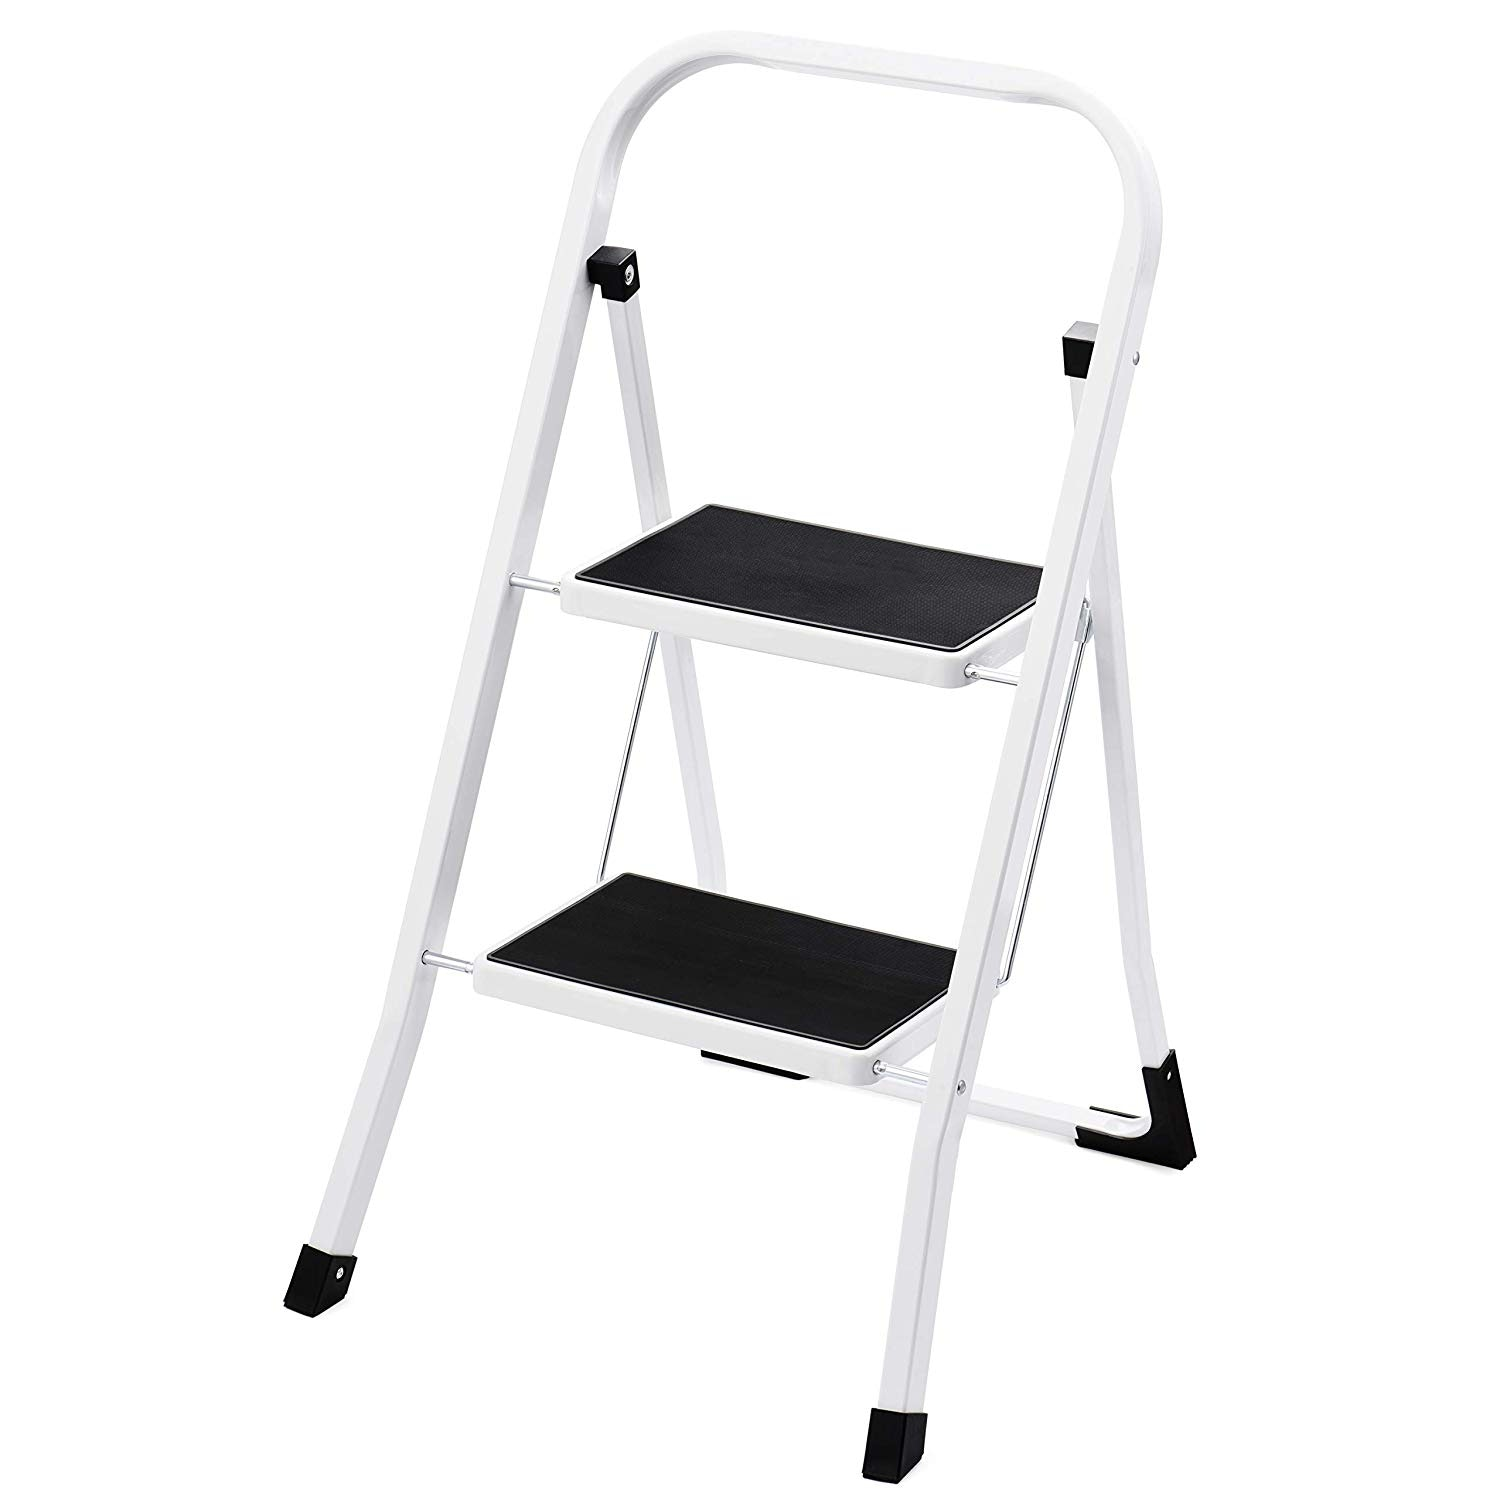 Groovy The 5 Best Step Ladders Creativecarmelina Interior Chair Design Creativecarmelinacom